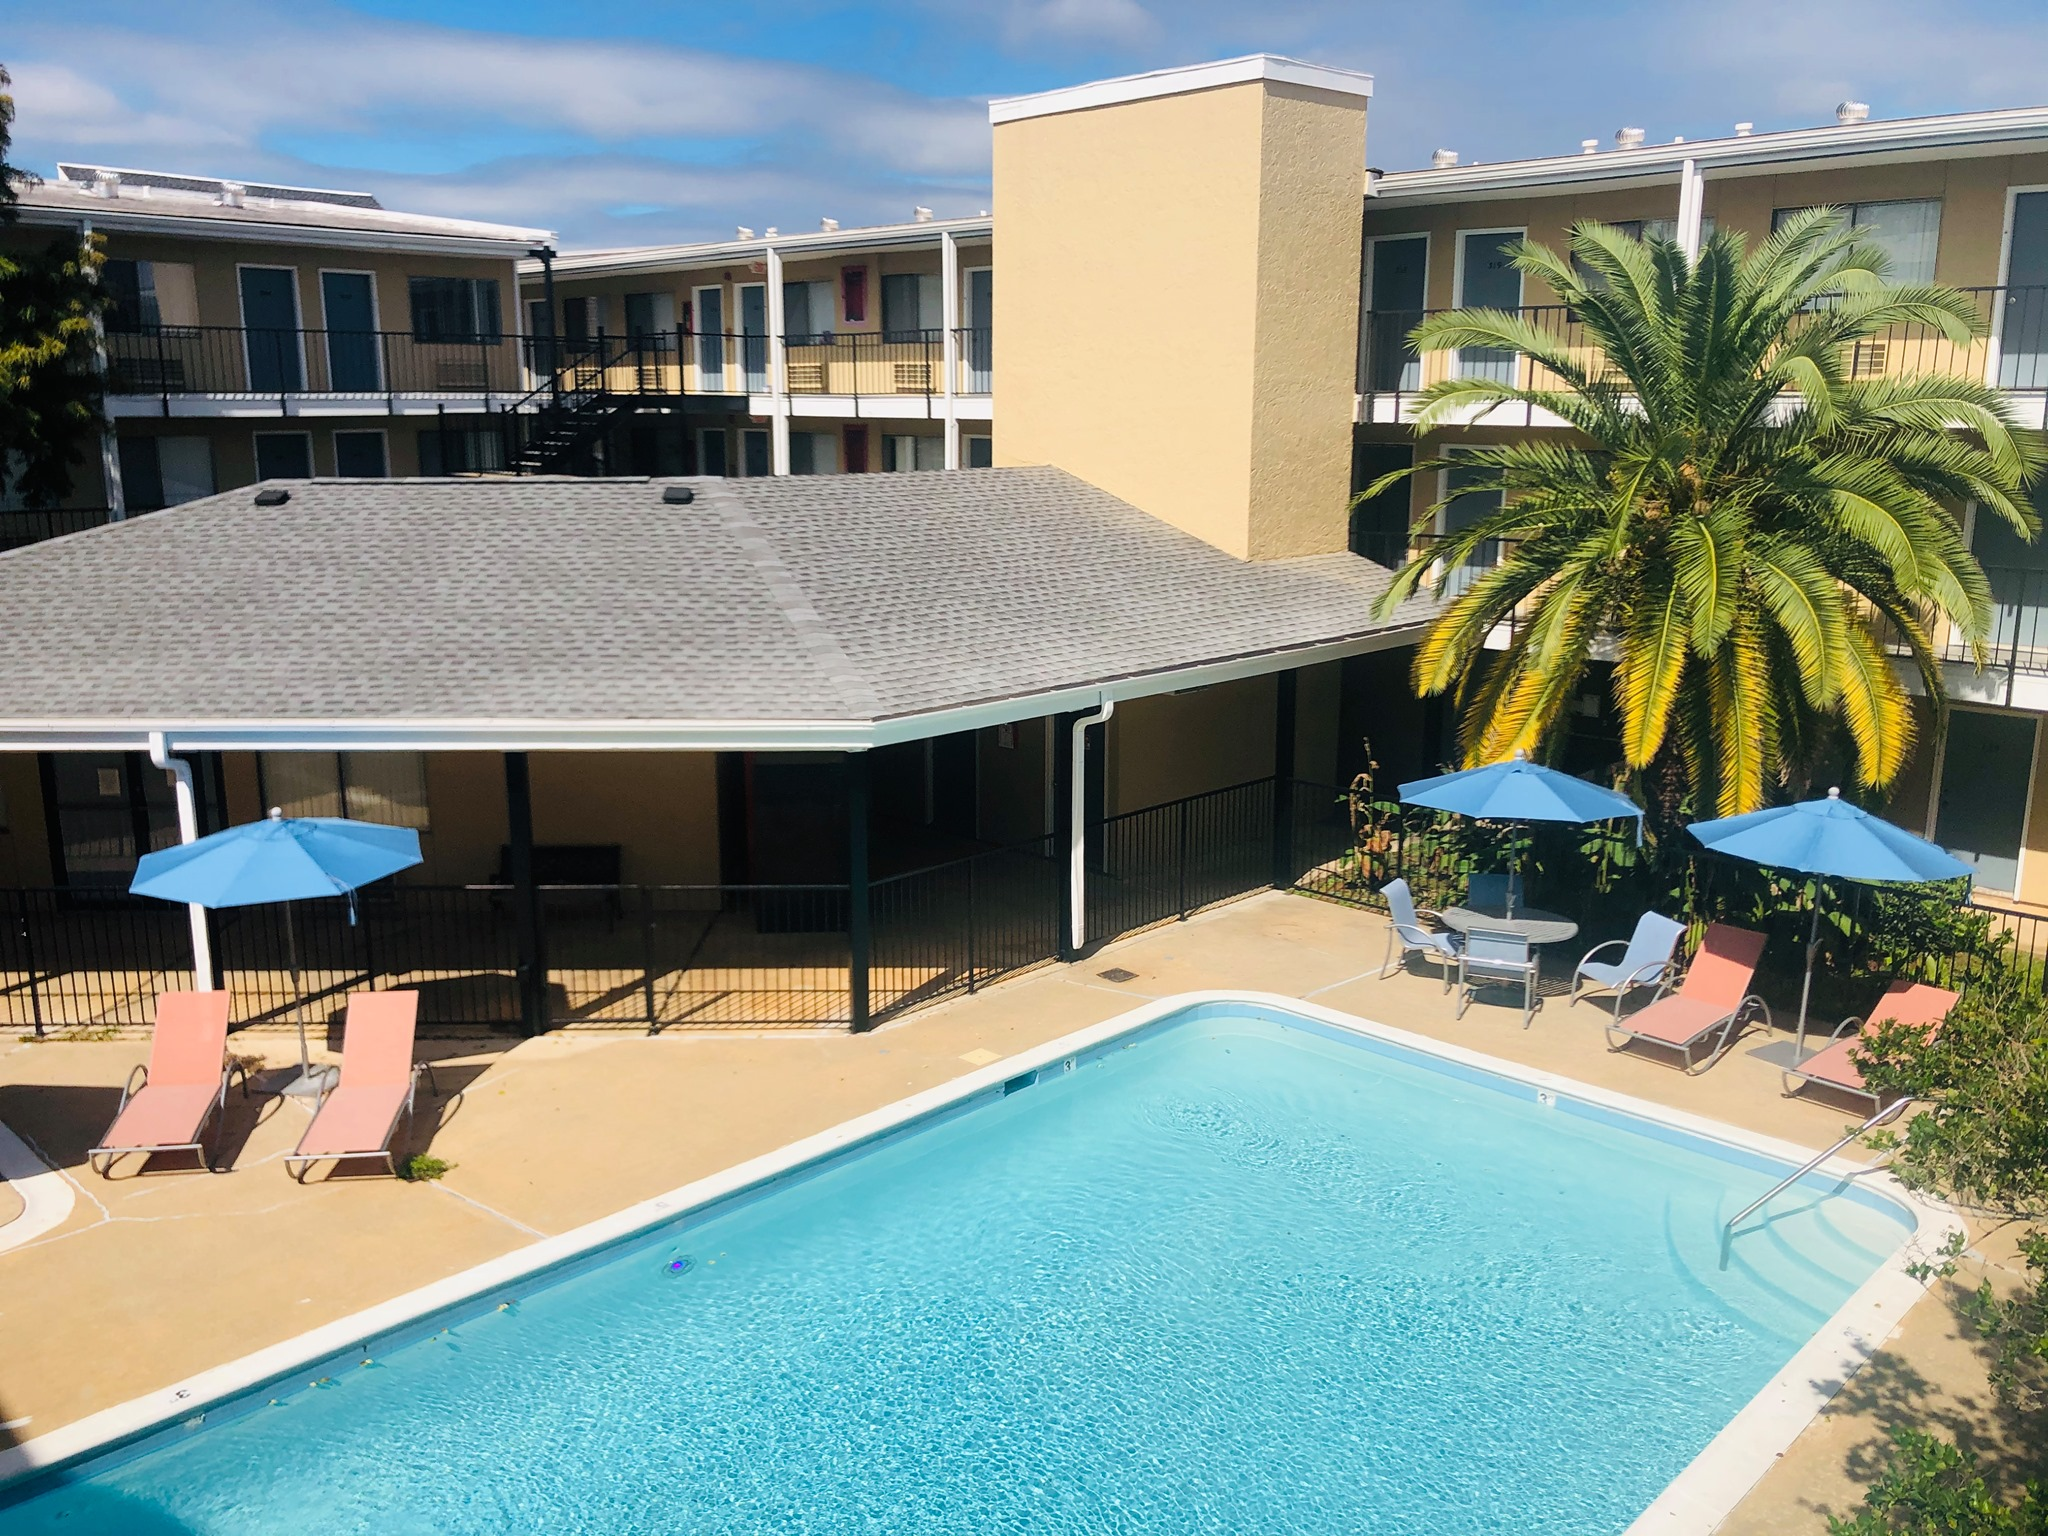 Sparkling Pool at Marigold Apartments in Mobile, Alabama